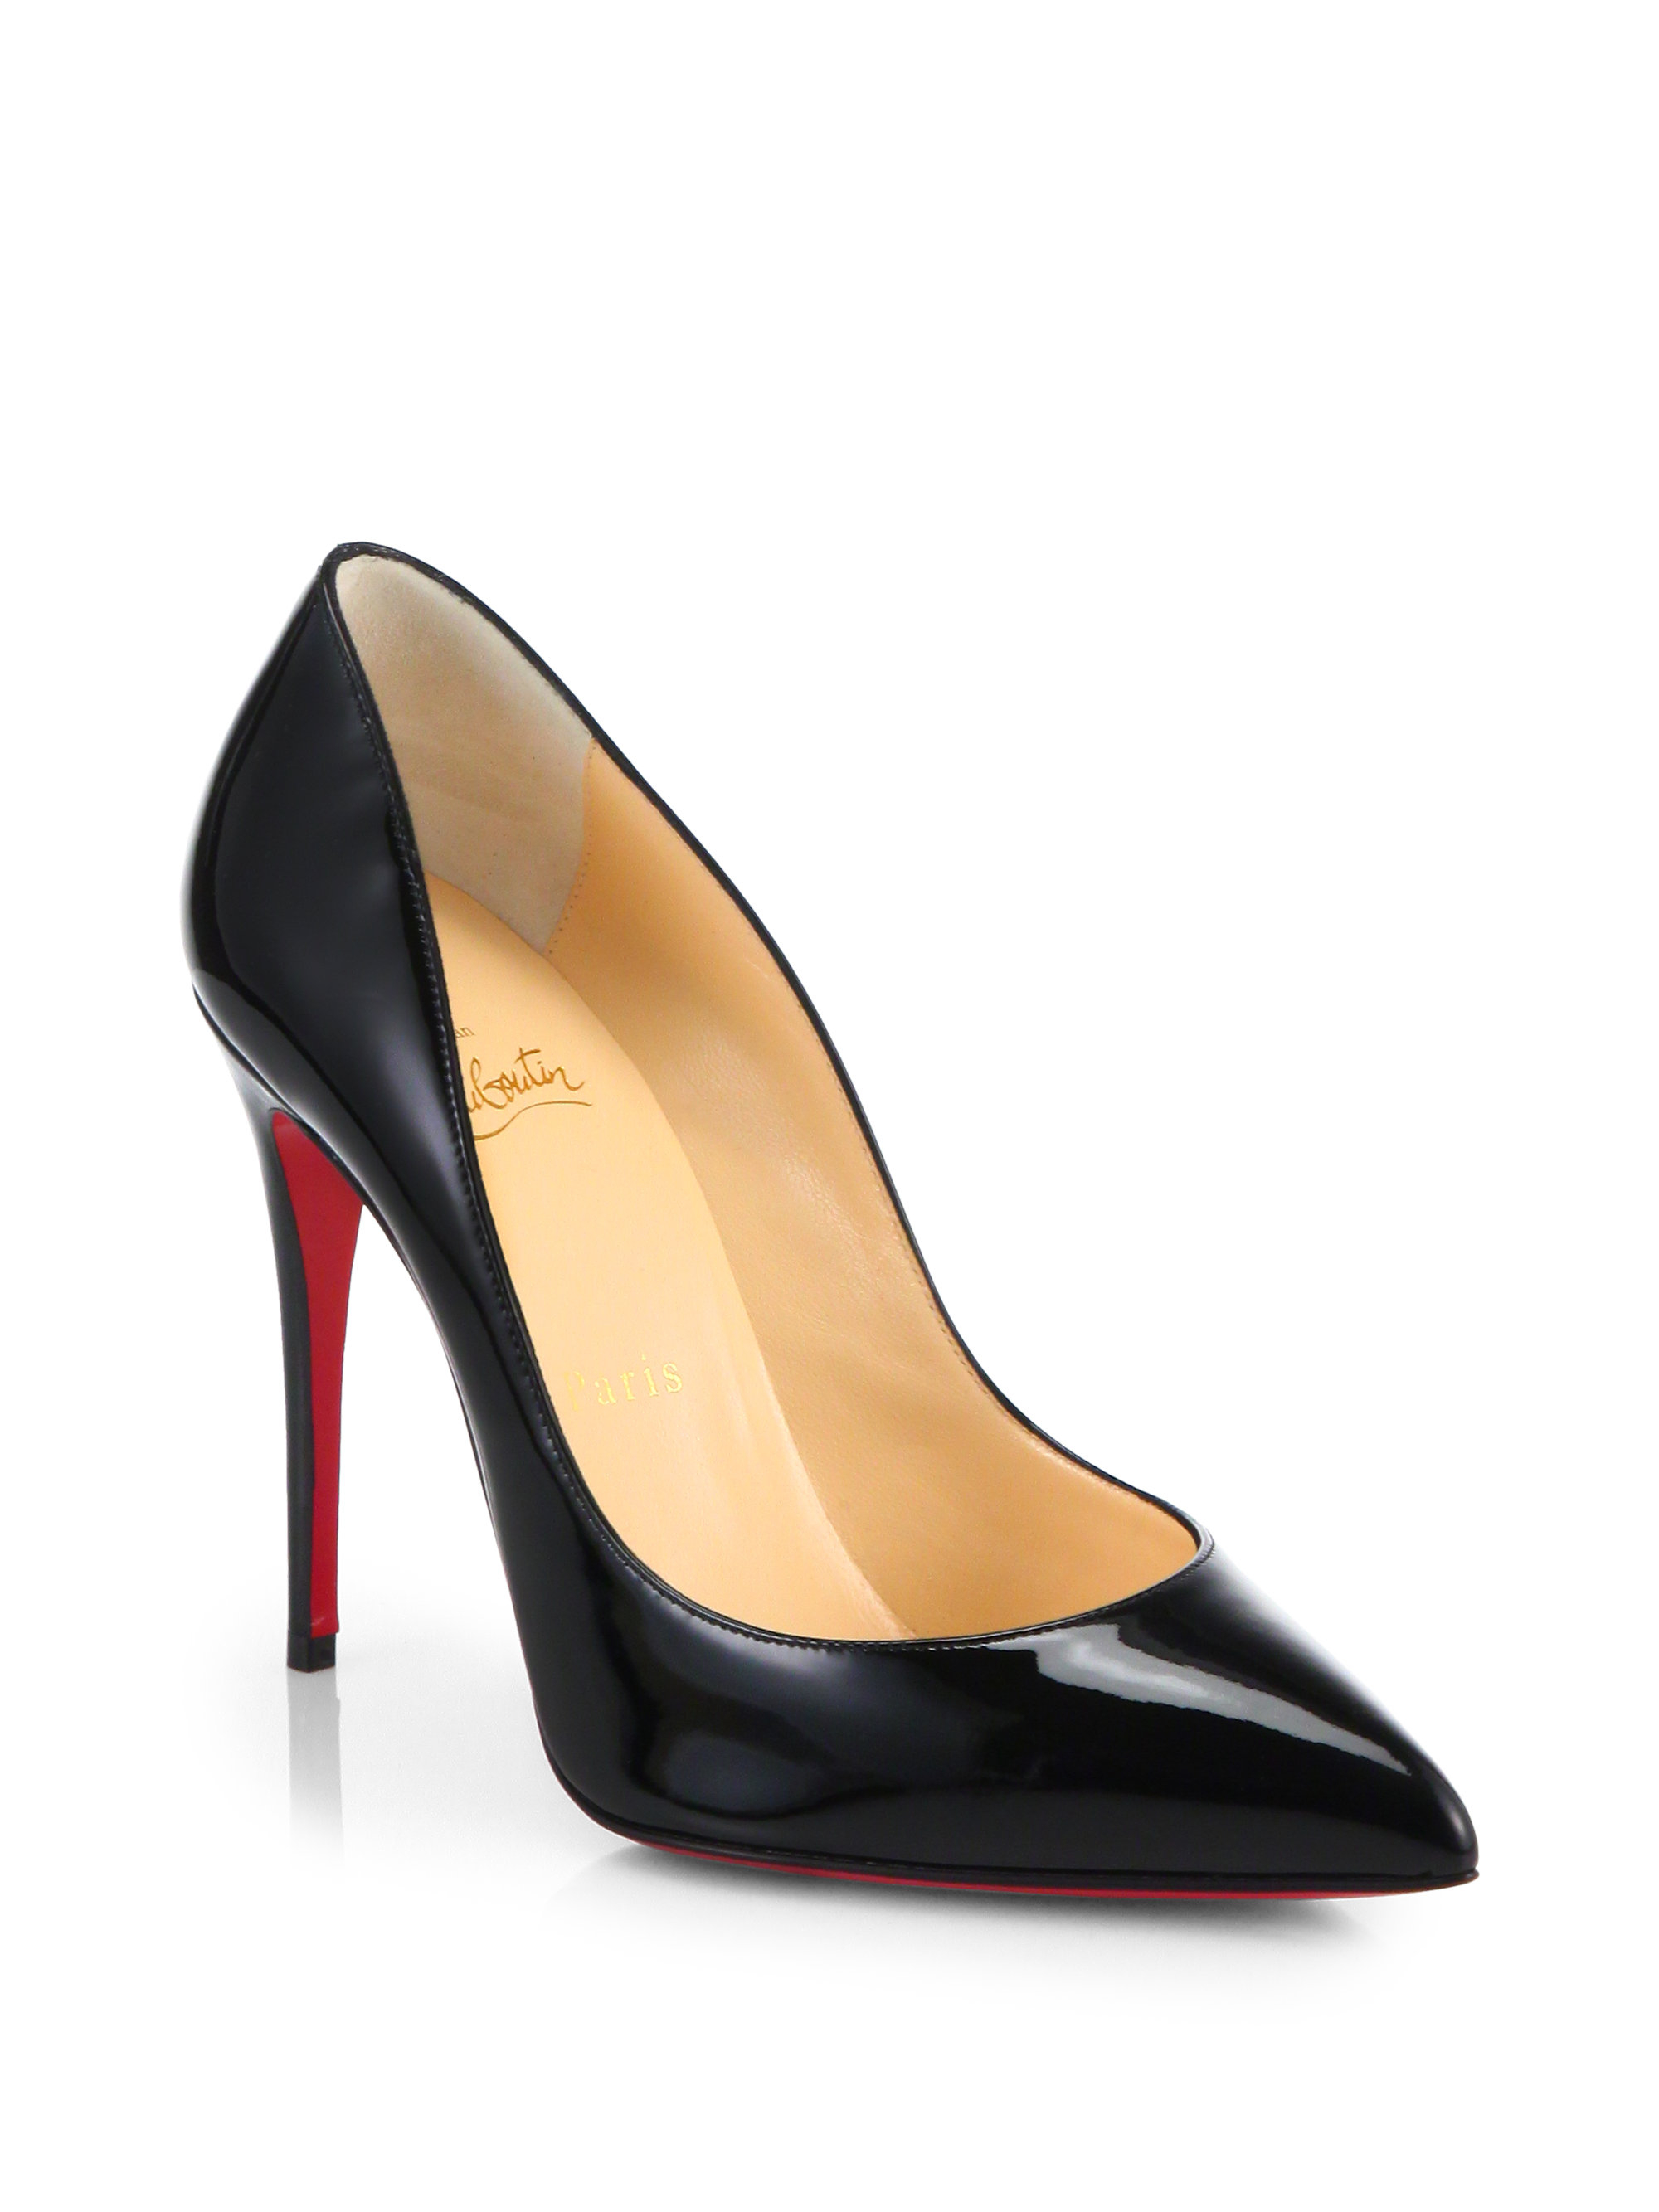 christian louboutin patent leather t-strap pumps